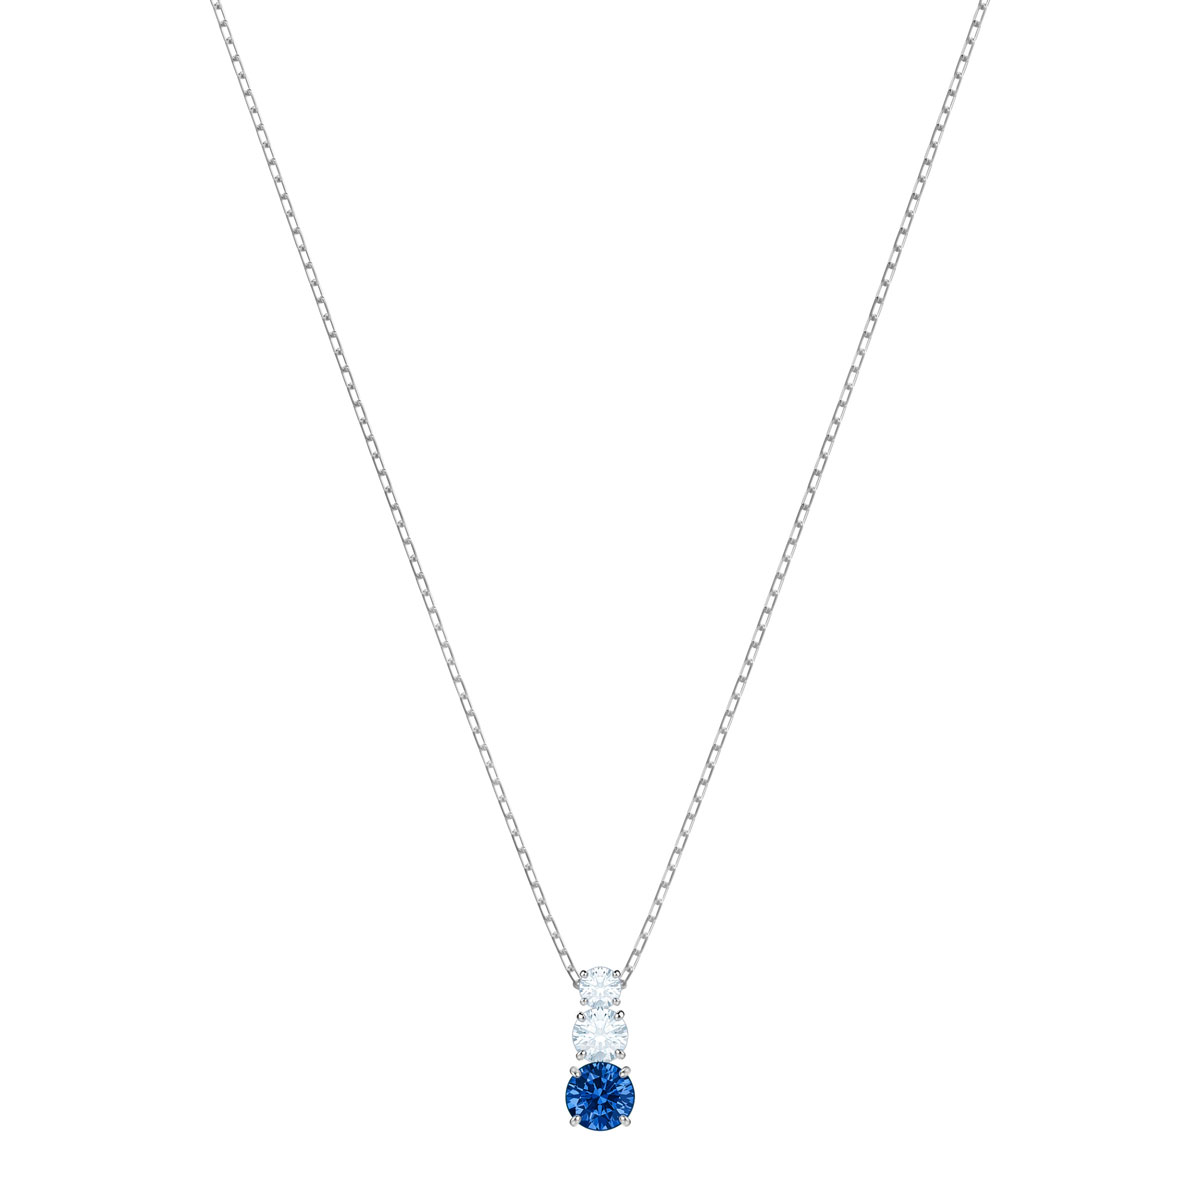 Swarovski Attract Trilogy Round Pendant, Blue, Rhodium